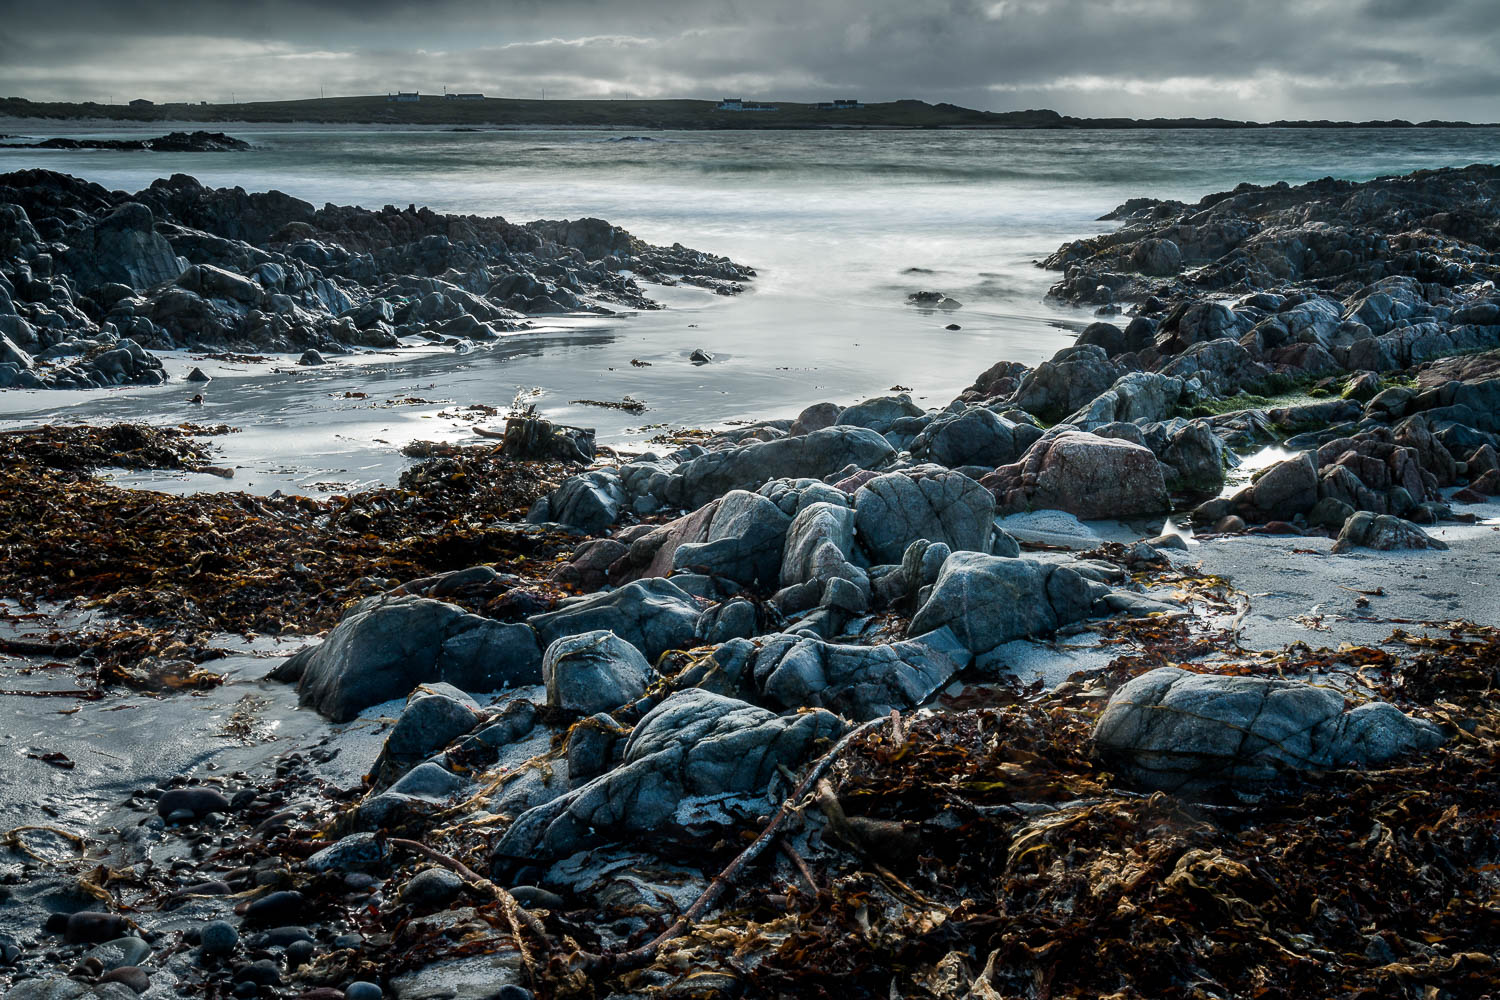 Tràigh Chornaig, The Green - taken among the rocks at the eastern end of the beach looking west.